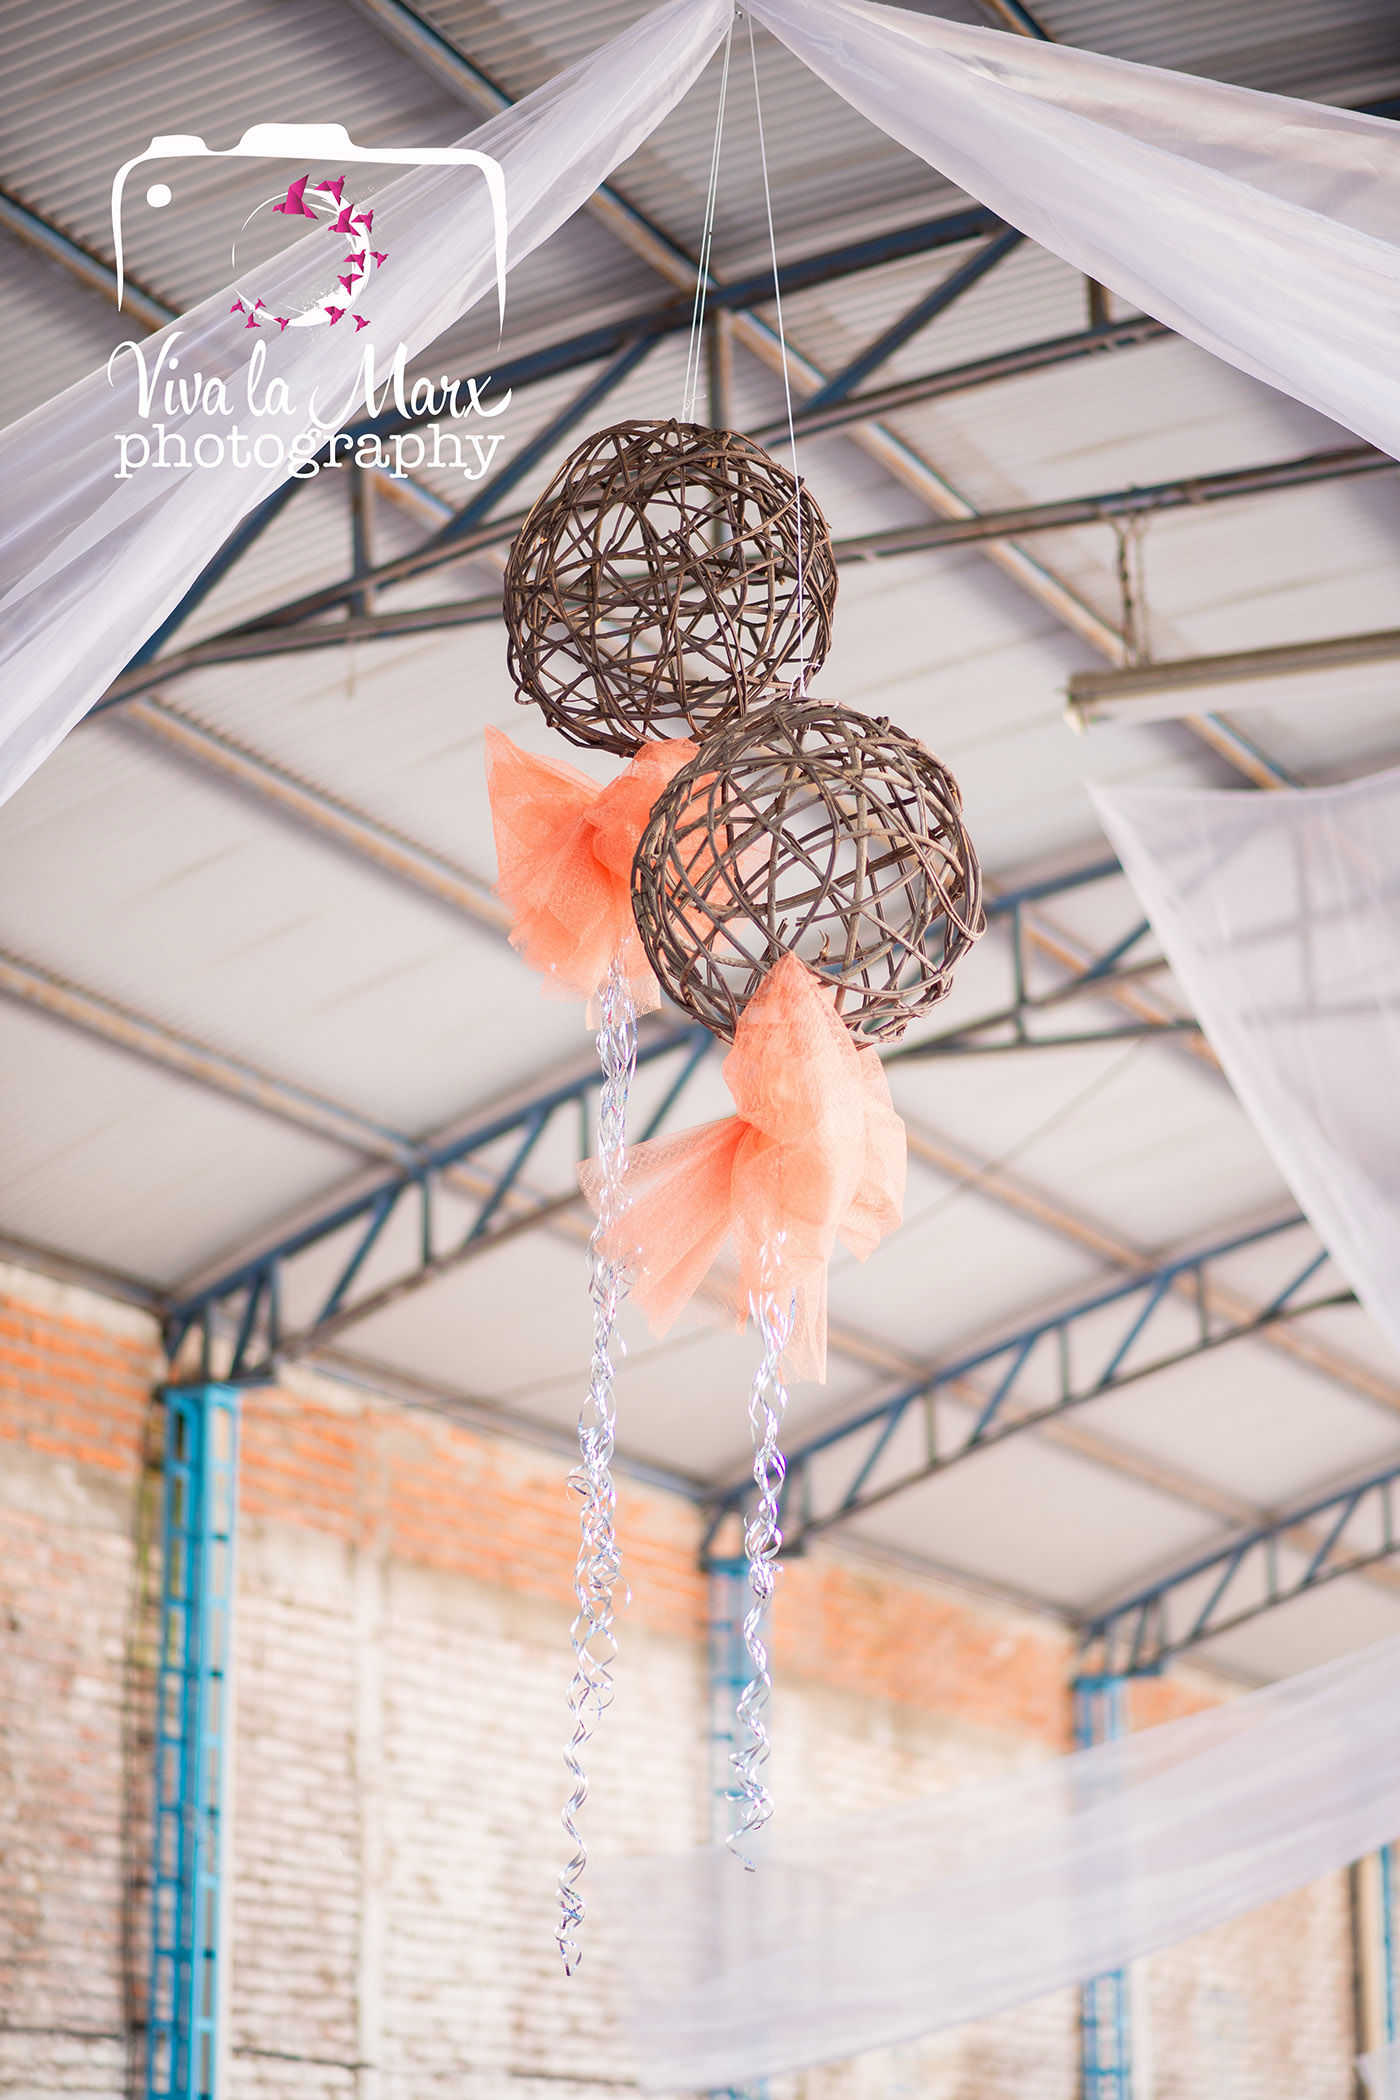 Lovely details from the reception hall, the colors soft and inviting, definitely romantic!